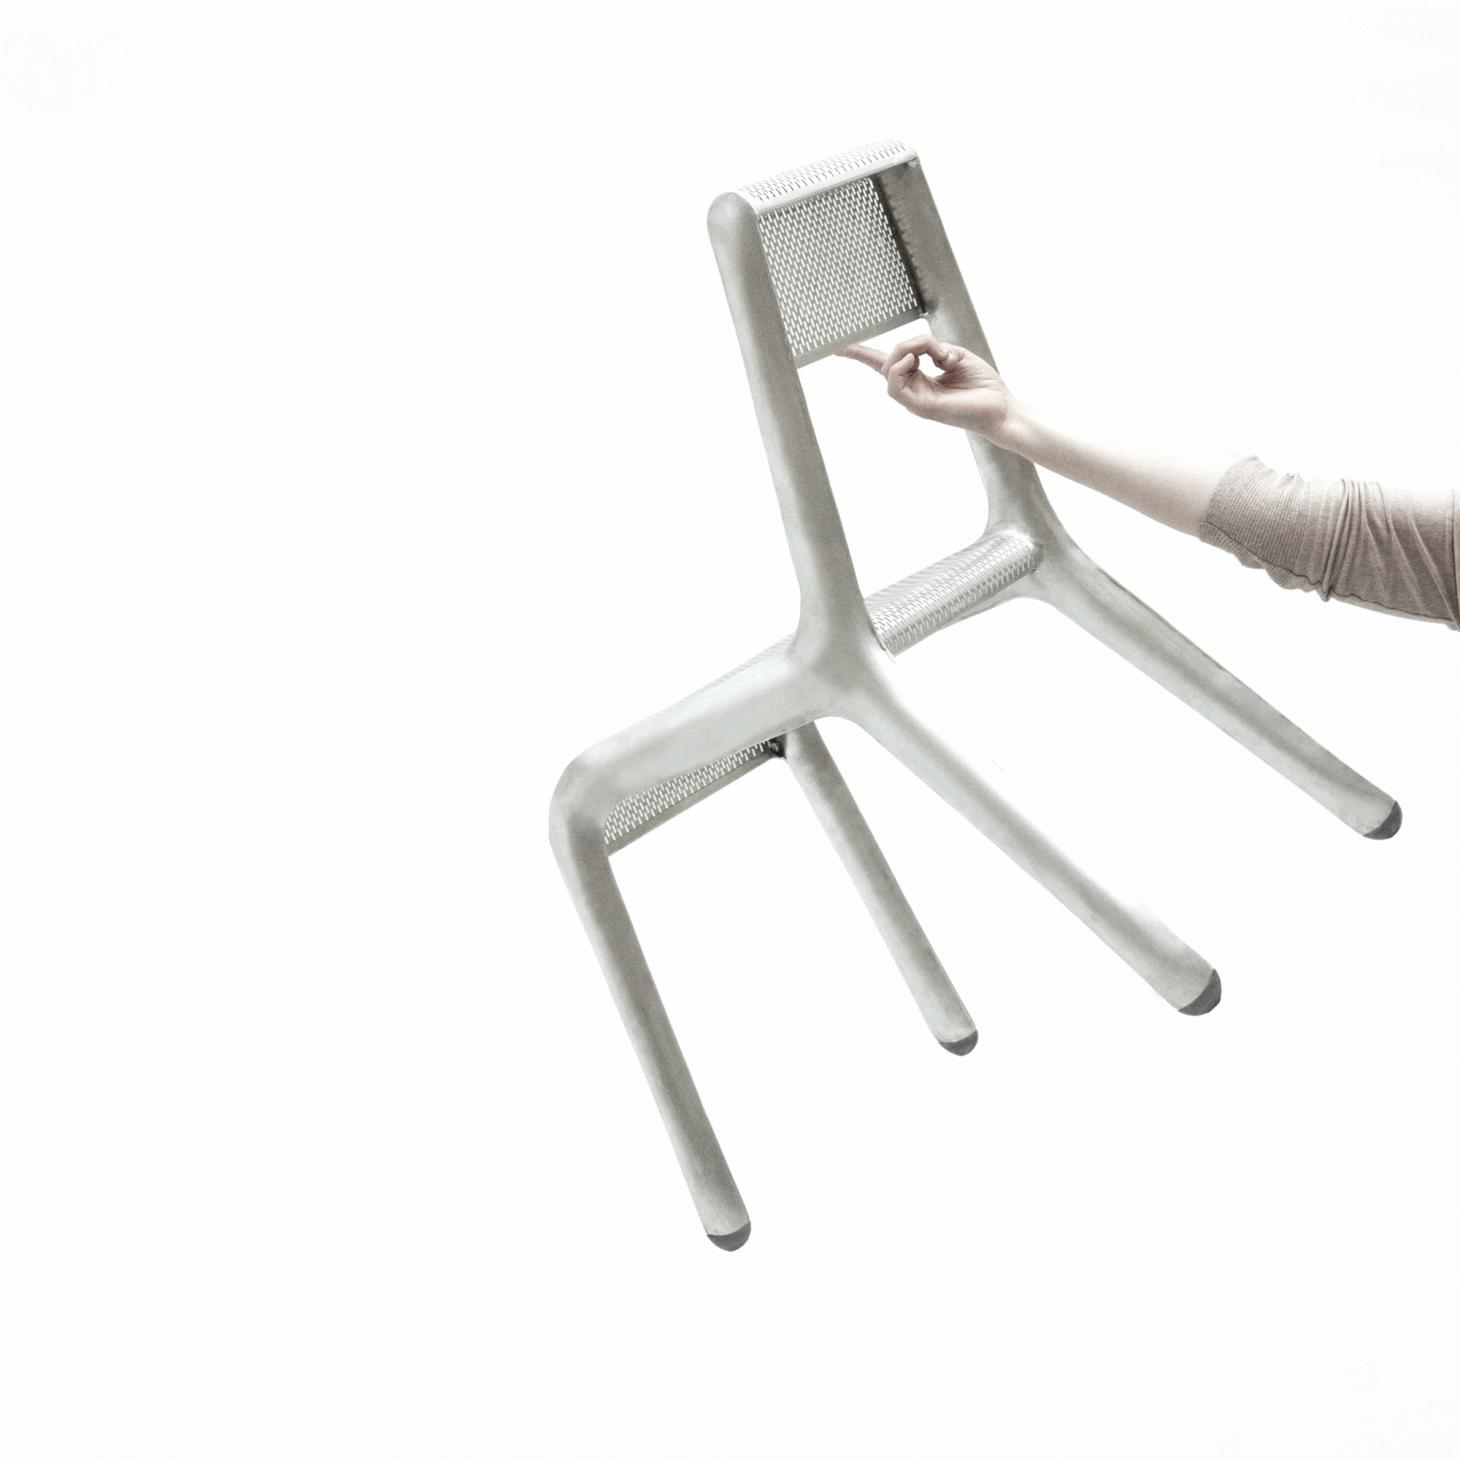 Holding the ultralight recycled aluminium chair with one finger